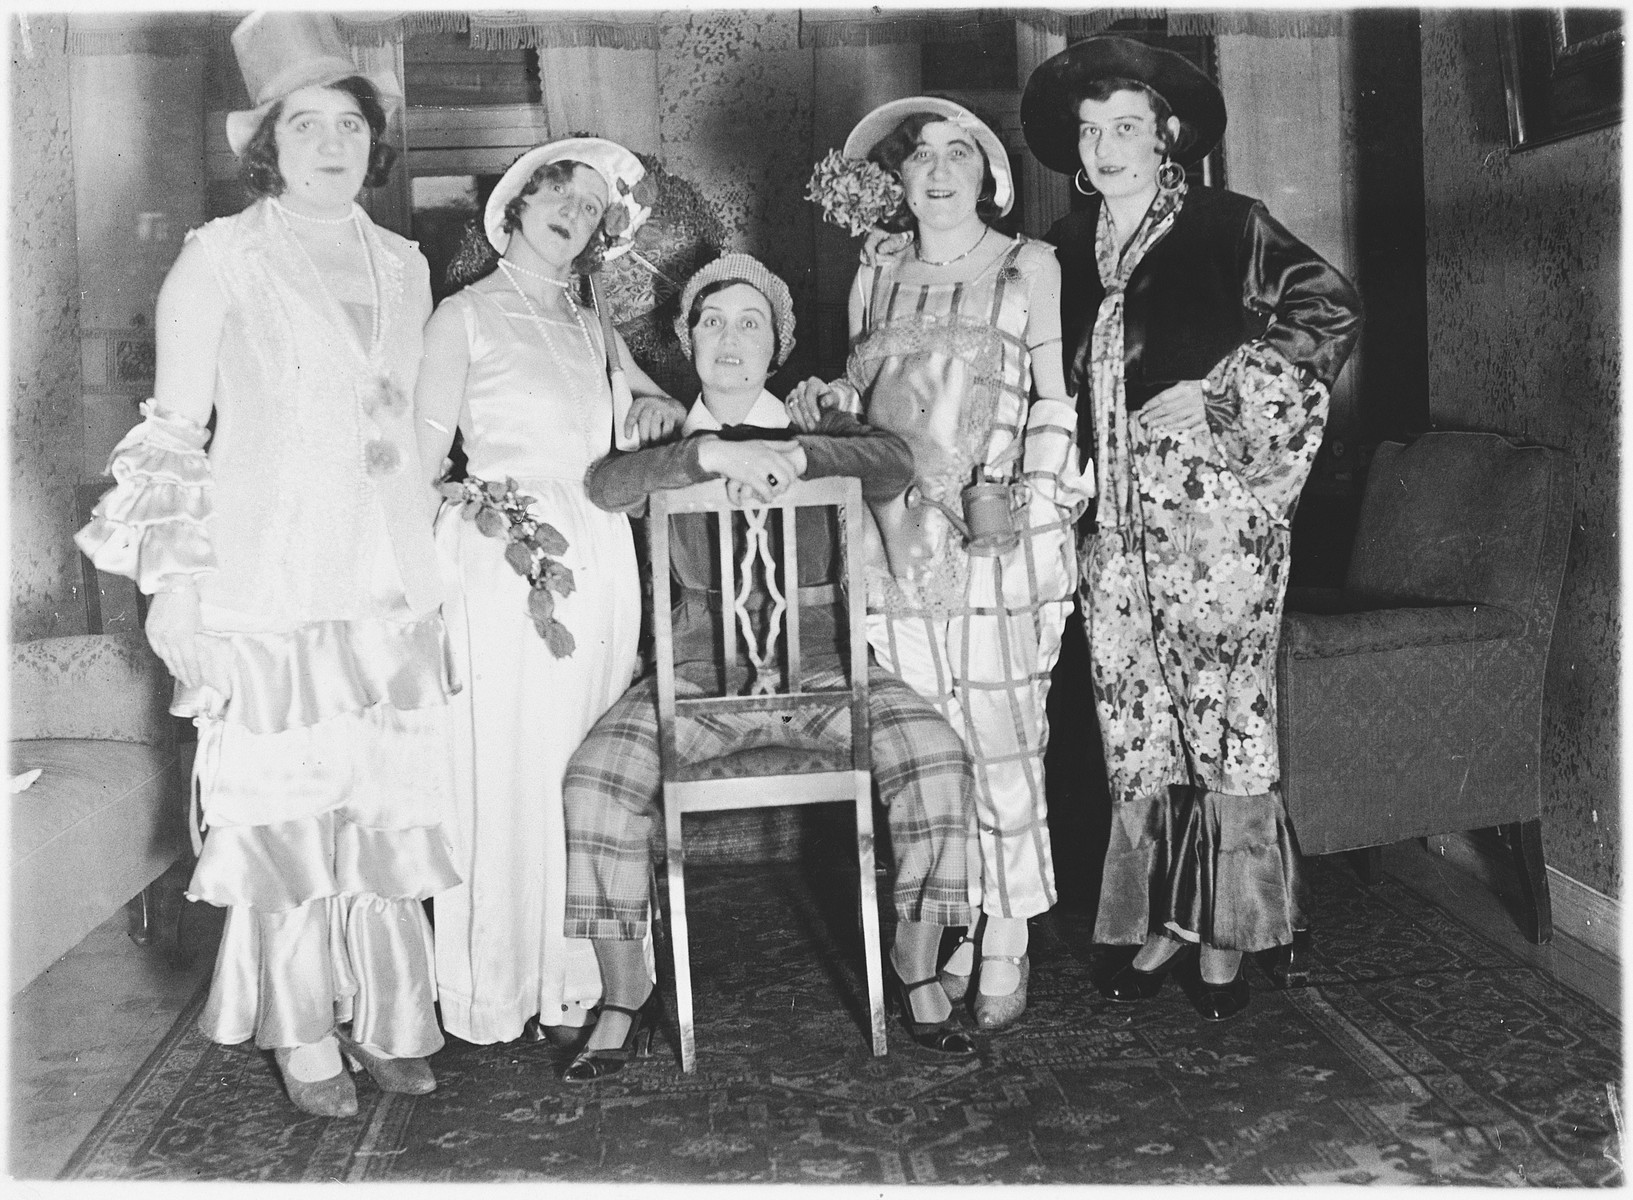 Group portrait of young Jewish women dressed in elaborate costumes in Luxembourg.  Among those pictured are Margaretha Nussbaum (left) and her friend Erna Hirsch.